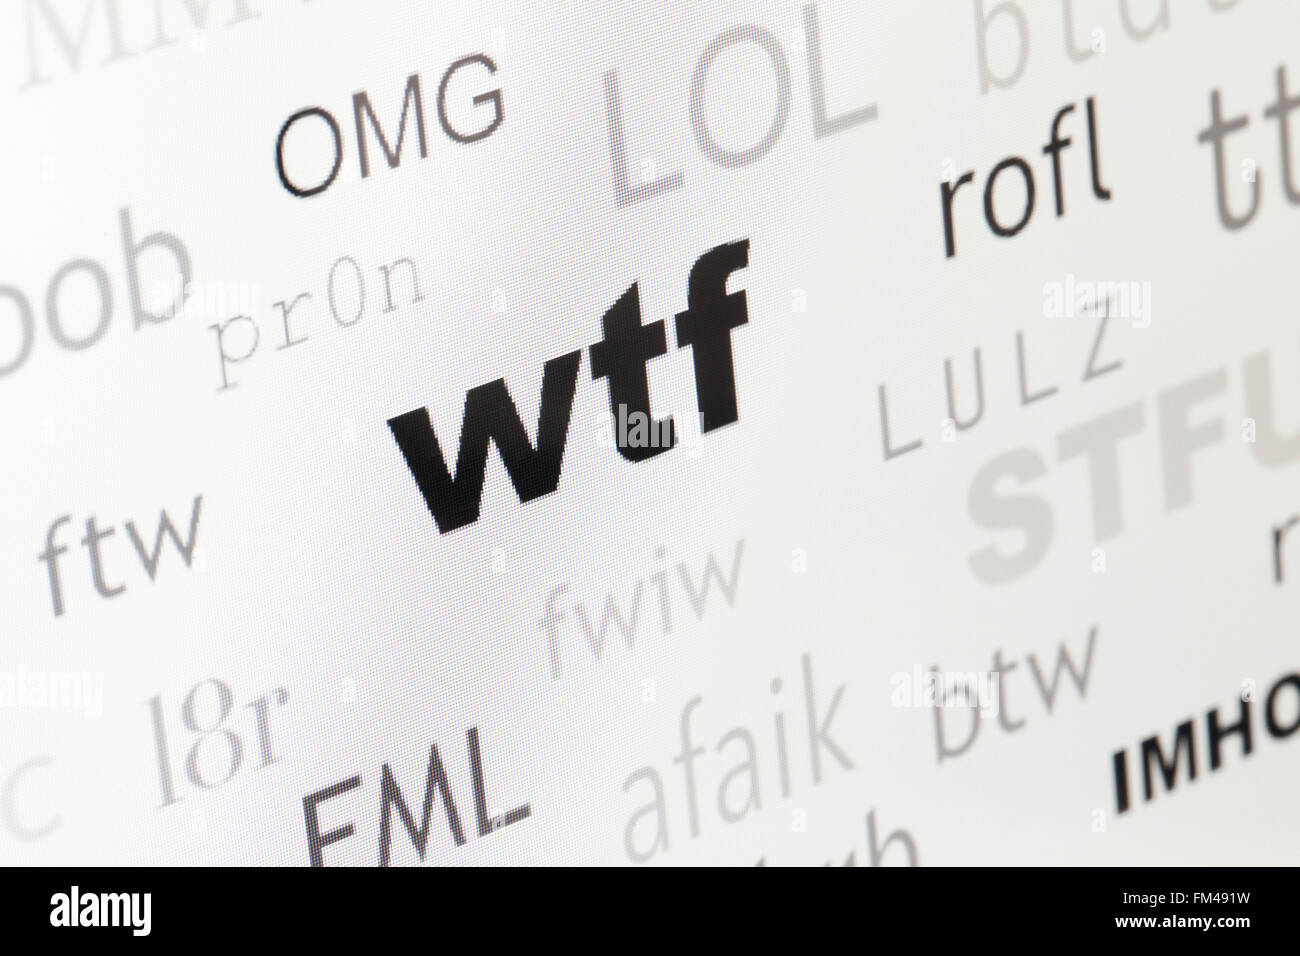 Wtf Stock Photos & Wtf Stock Images - Alamy